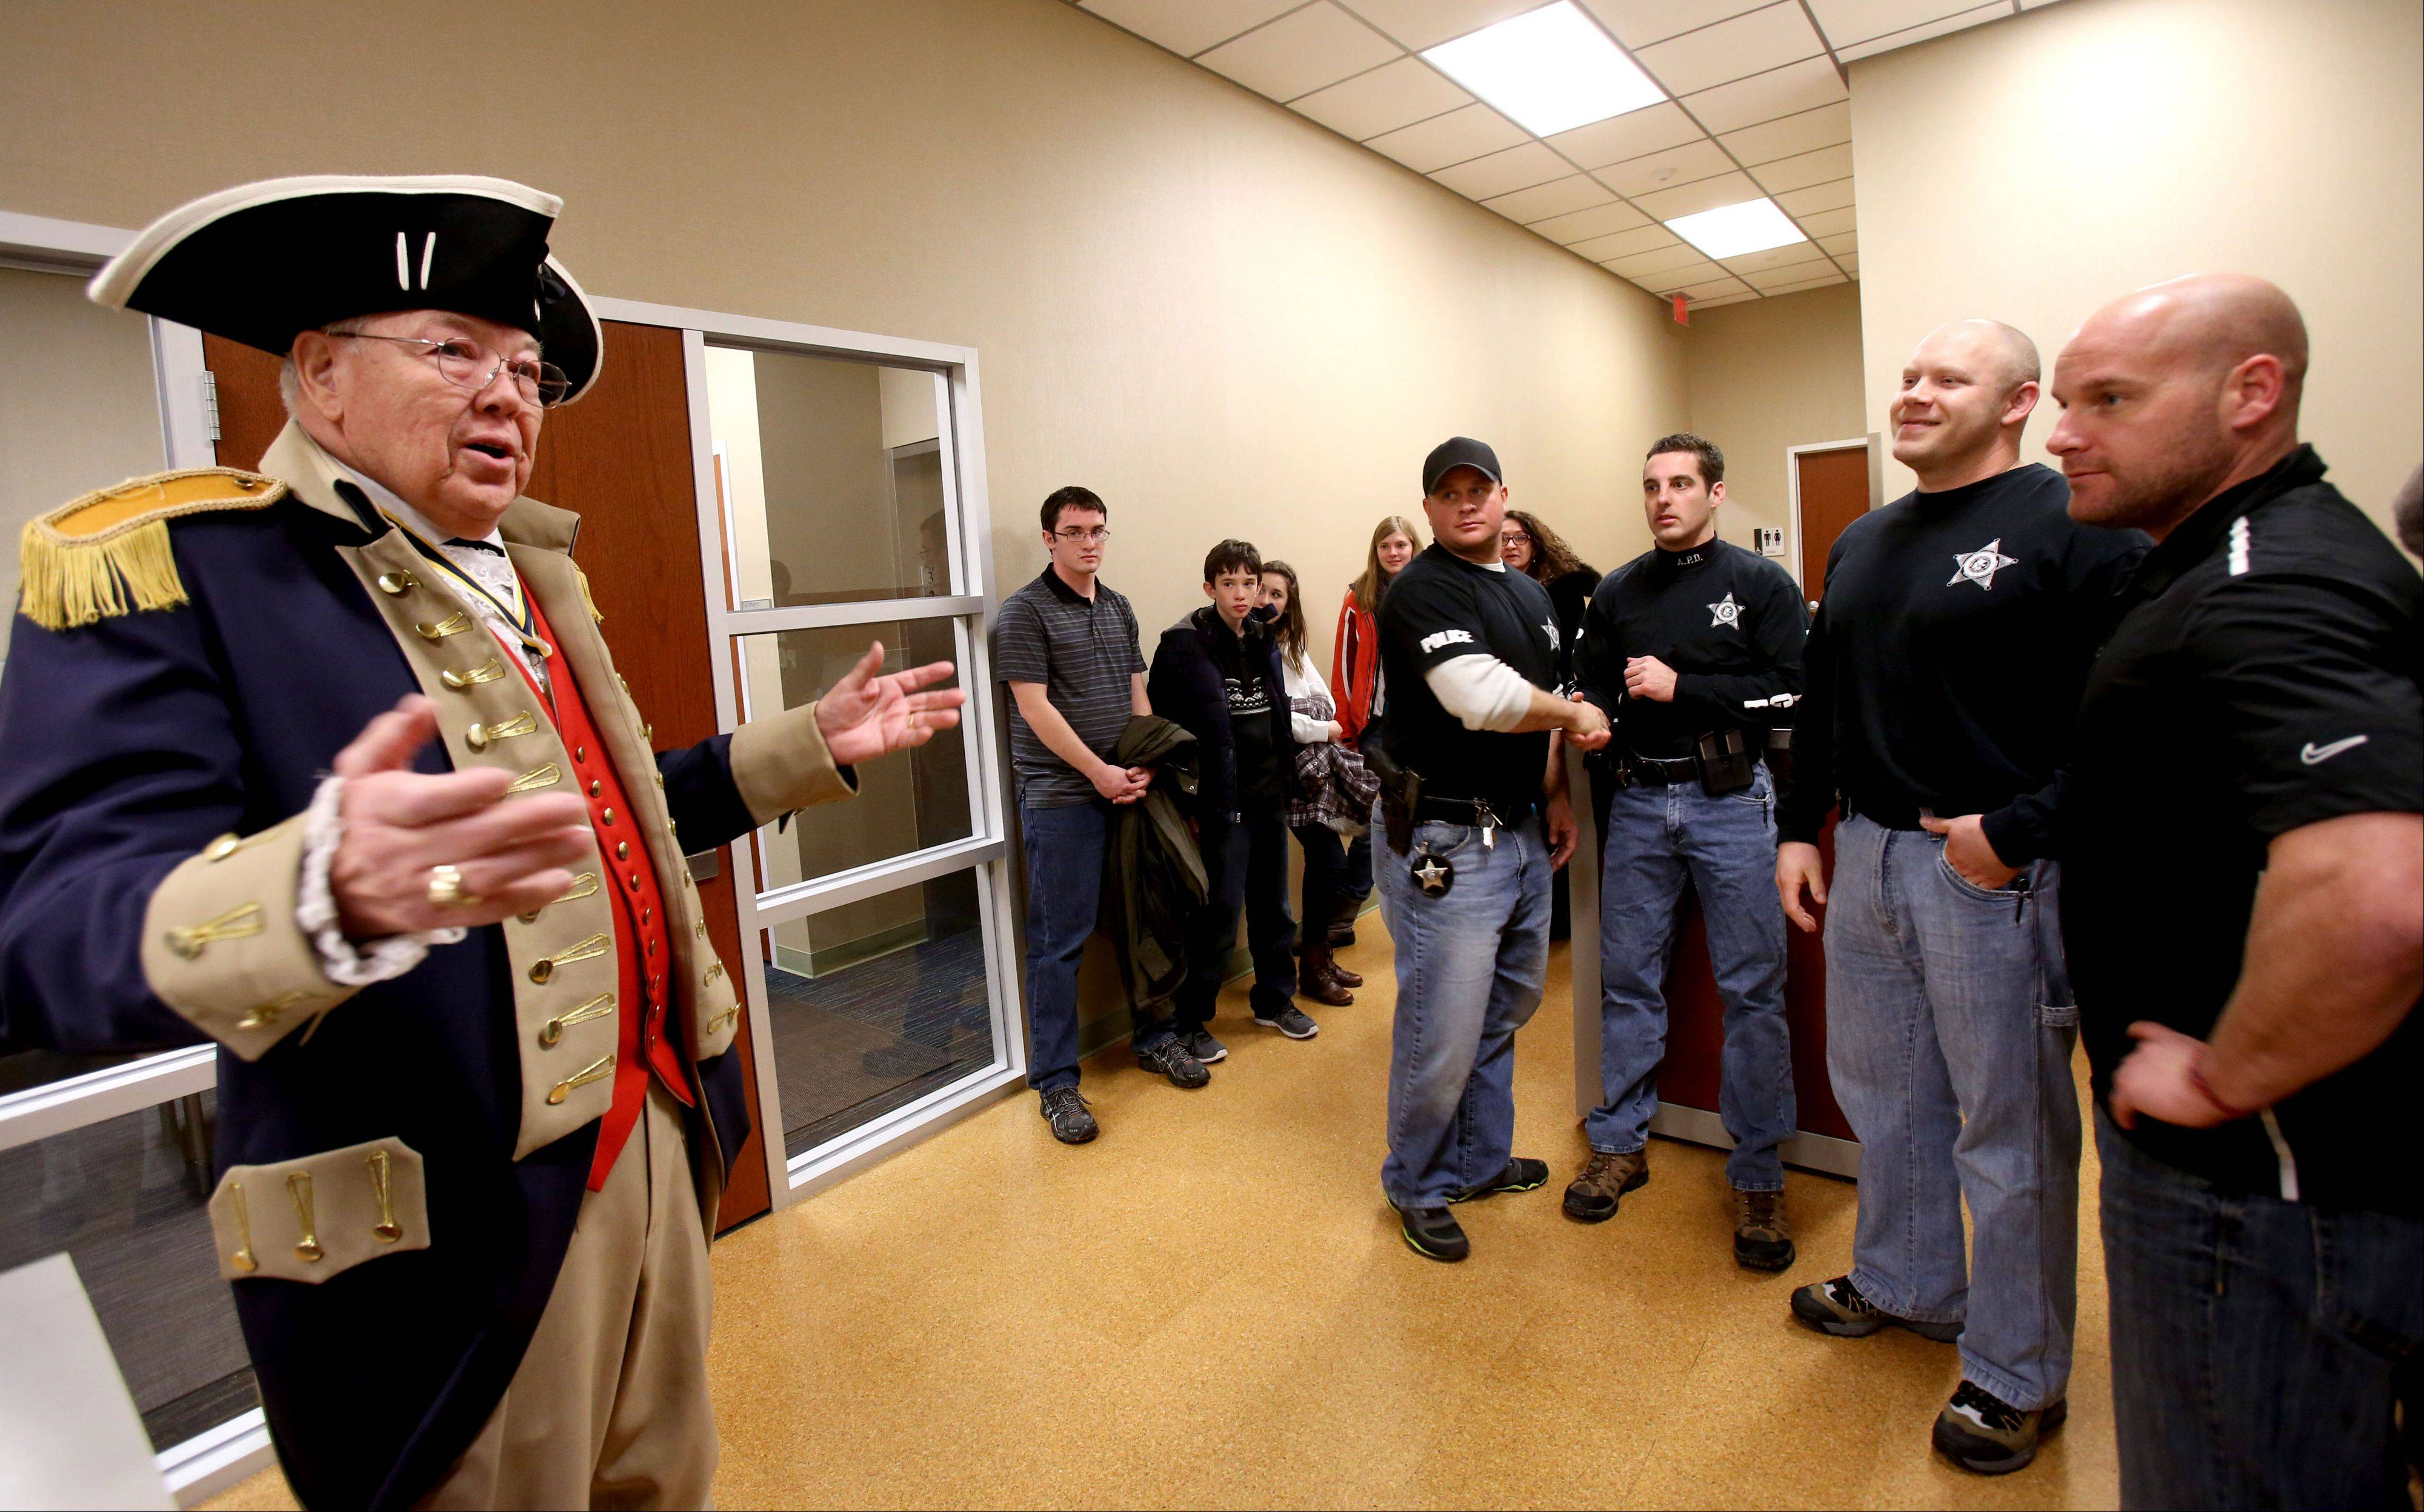 Rod Herbig, left, president of the Fox Valley Chapter of the Sons of the American Revolution, talks to Aurora police officers who saved a Batavia girl last March when the car in which she was riding plunged into a frigid pond. The officers included, from left, Nicholas Gartner, Erik Swastek, W. Joshua Sullivan and Jeffrey Hahn.